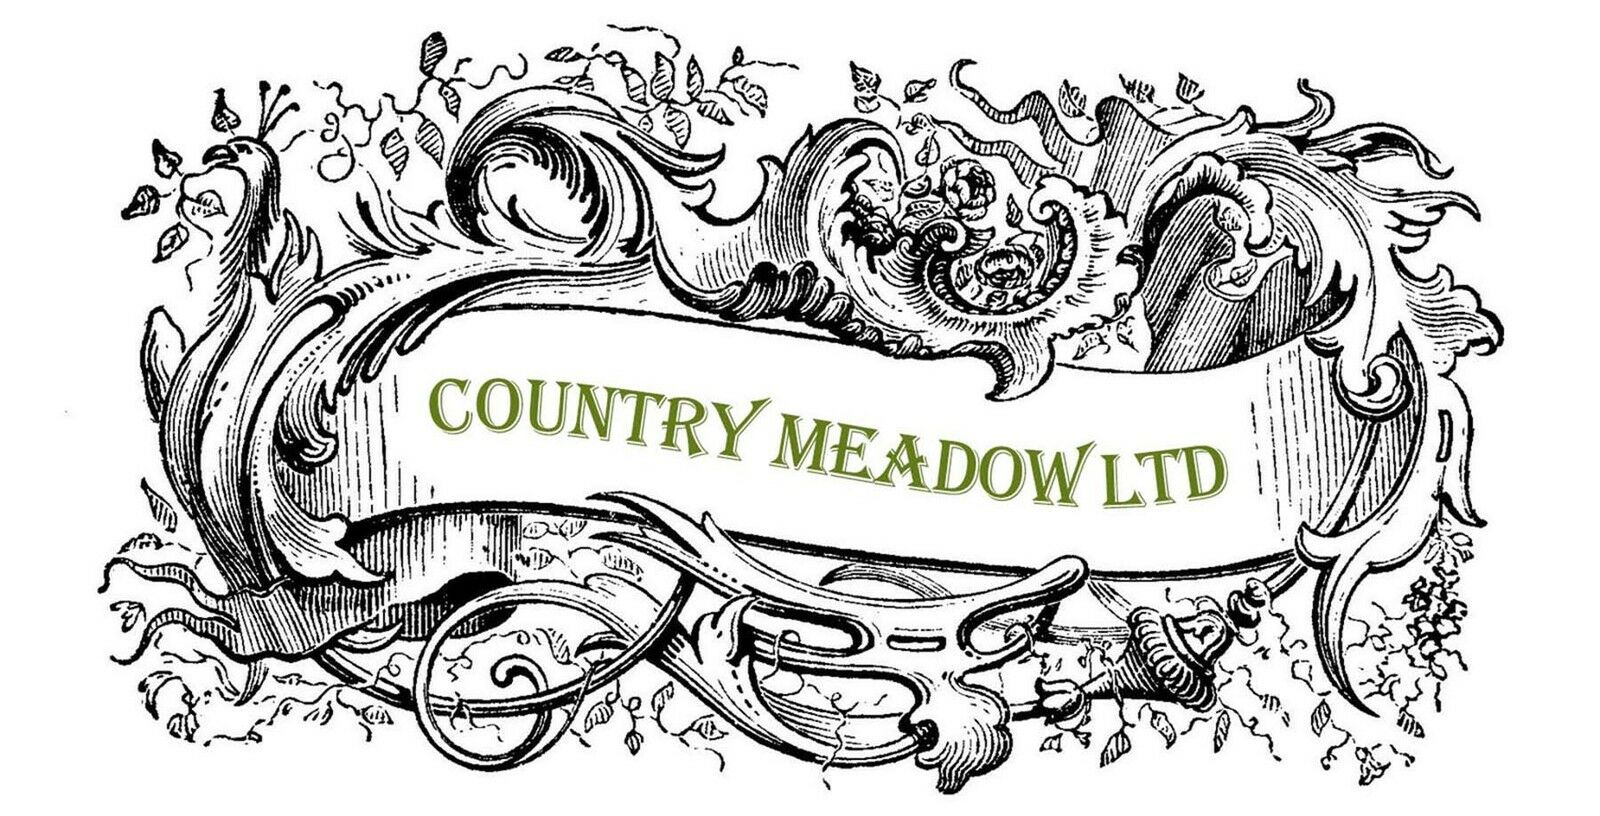 Country Meadow Ltd